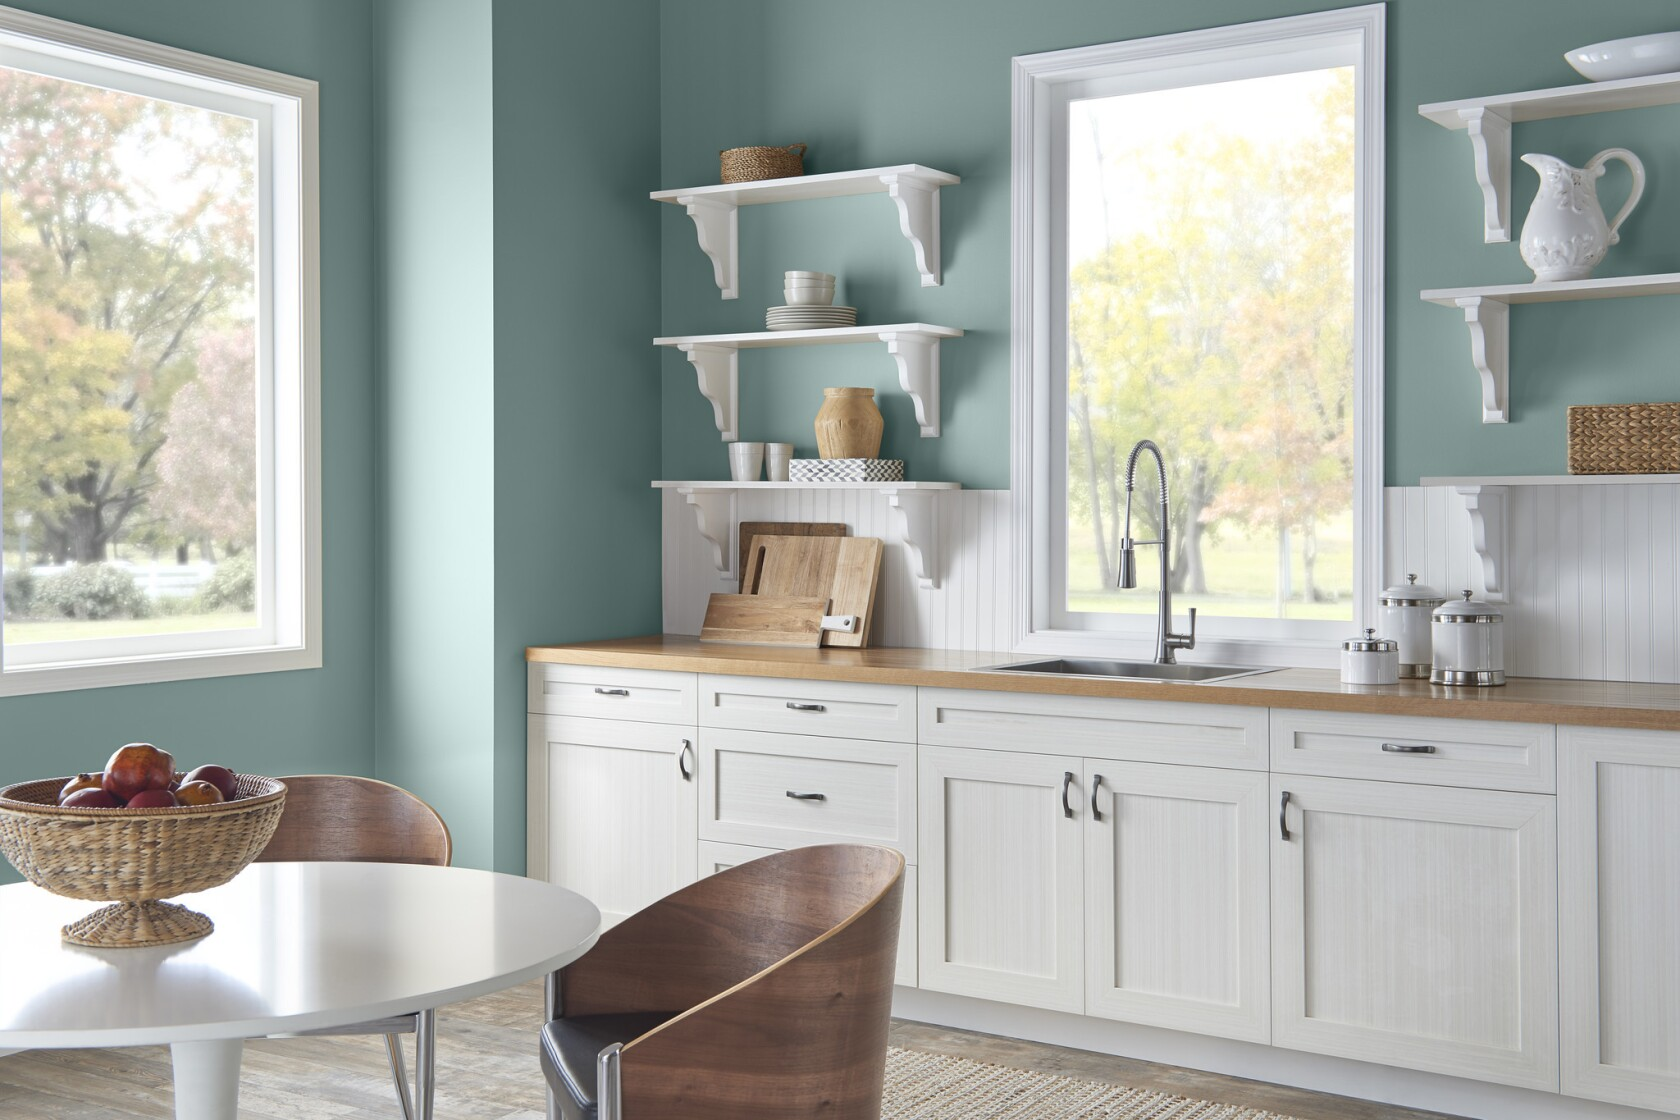 Behr predicts In the Moment will be the hot new hue in 2018